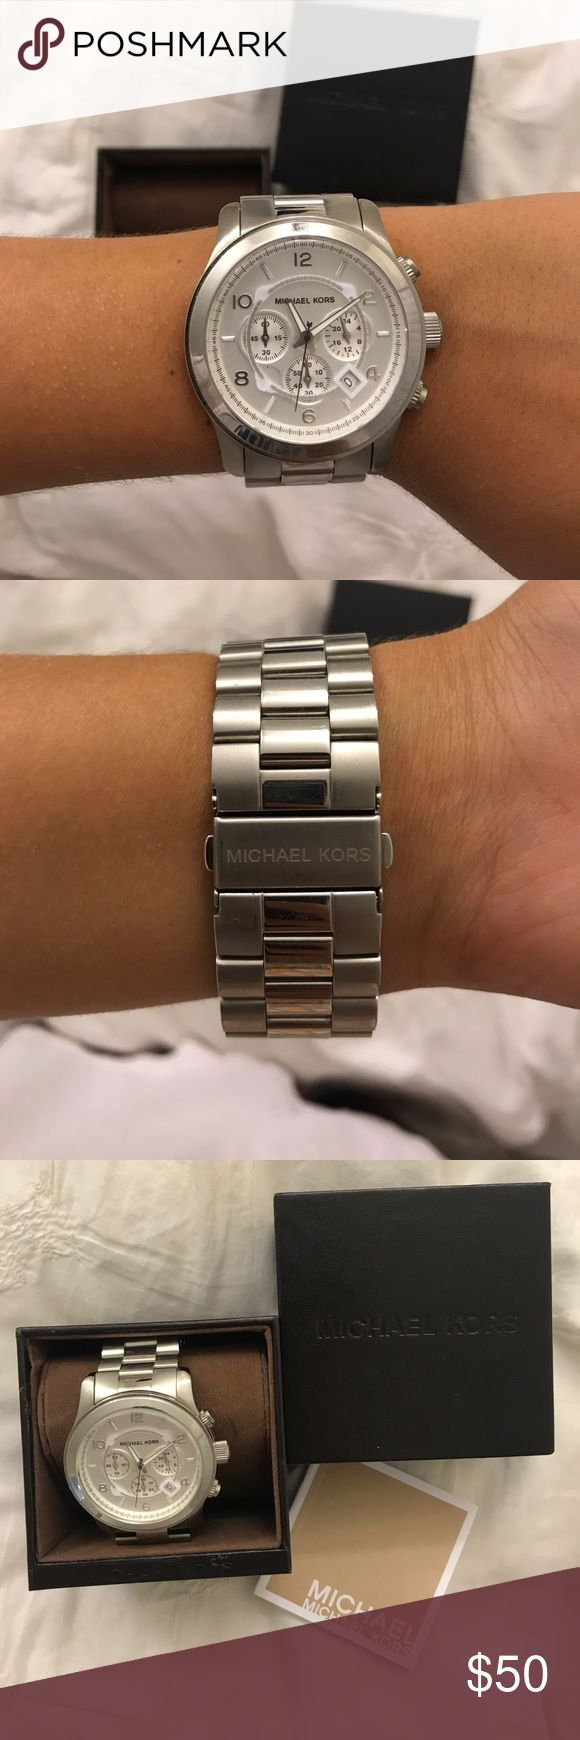 Michael Kors Silver Oversized Watch - BRAND NEW Michael Kors Silver Oversized Watch!! BRAND NEW! No scratches! In original box with warranty papers ! Michael Kors Accessories Watches